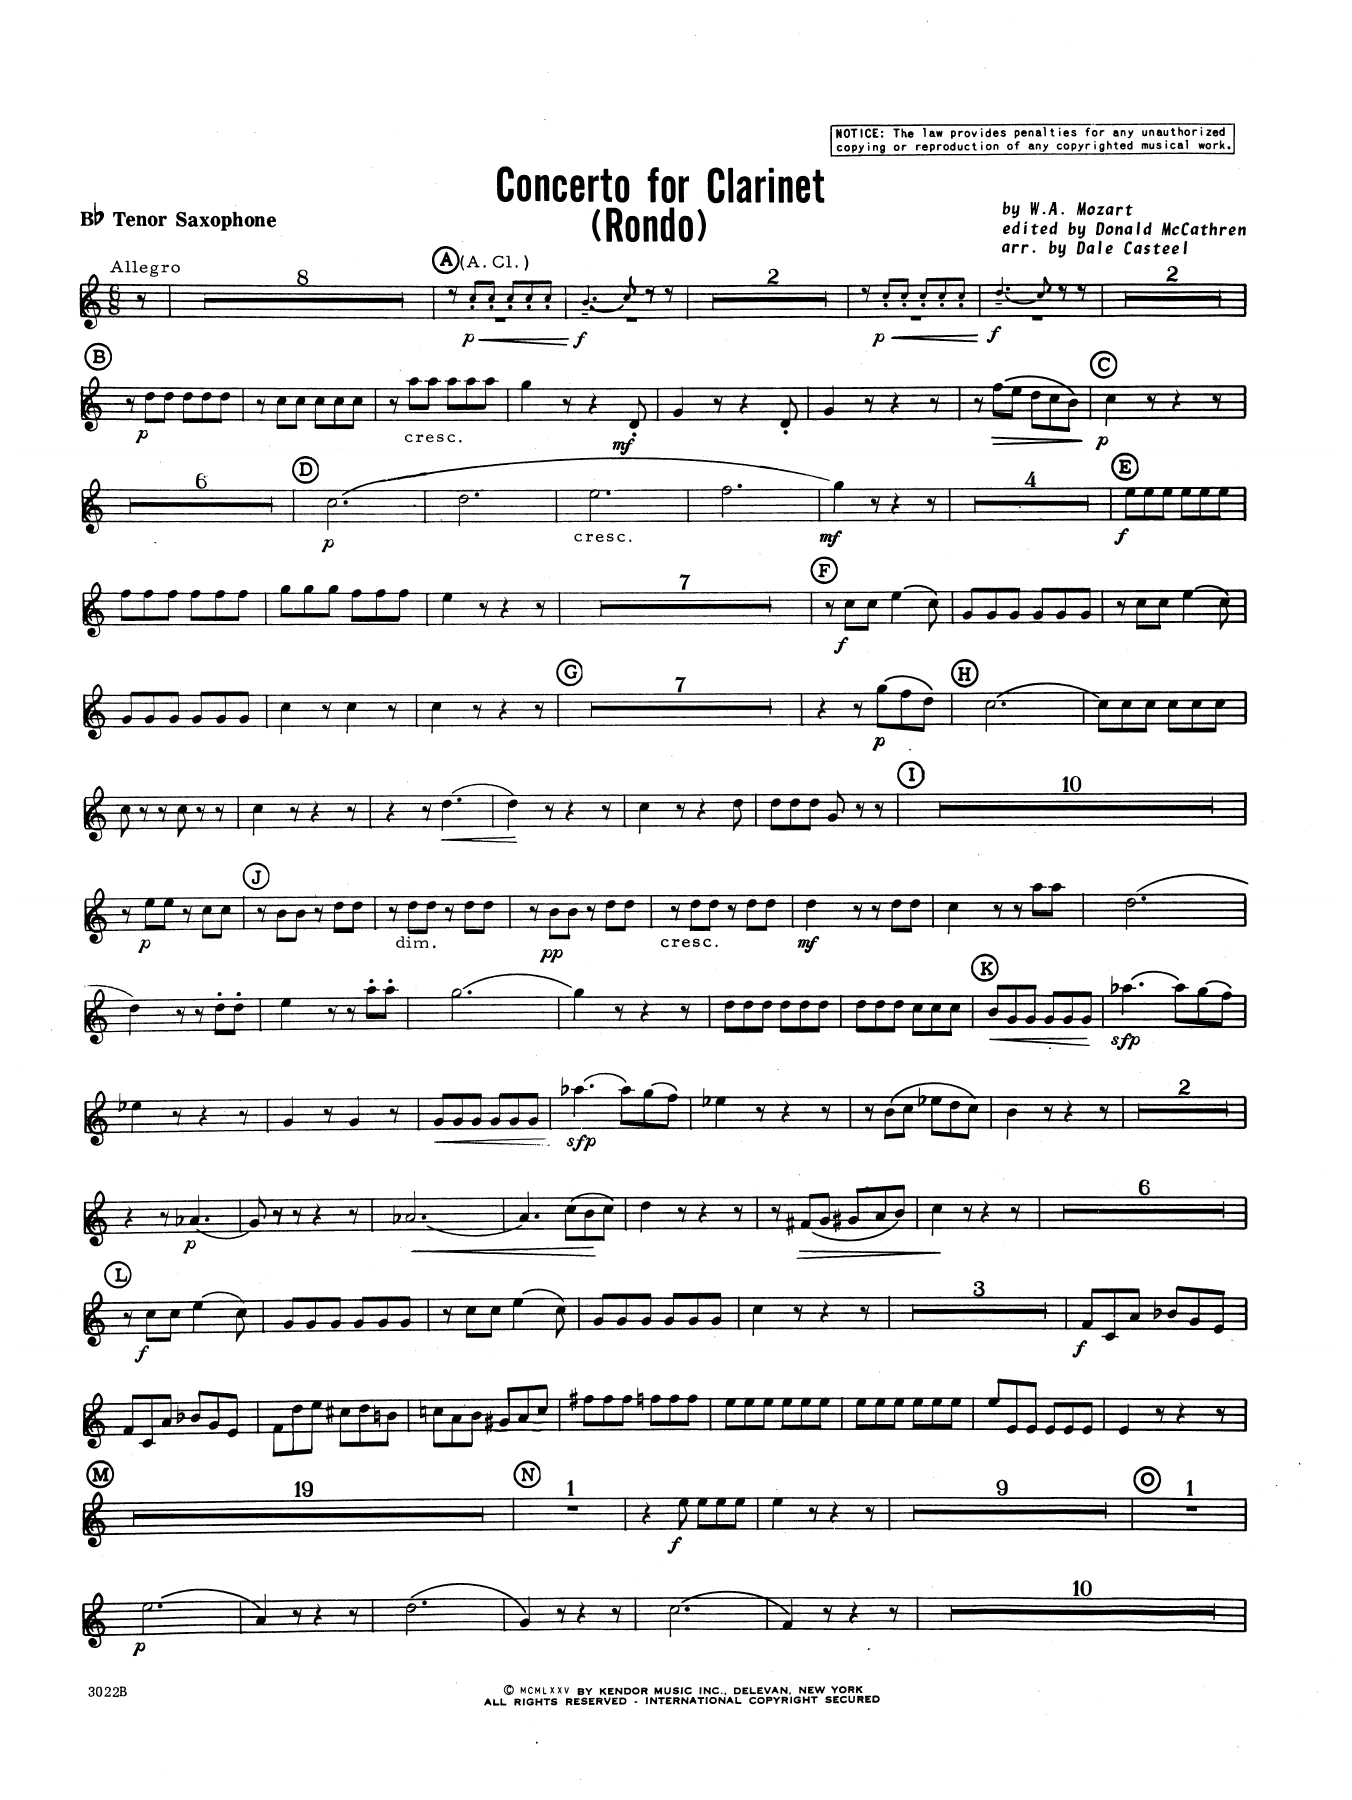 Donald McCathren and Dale Casteel Concerto For Clarinet - Rondo (3rd Movement) - K.622 - Bb Tenor Saxophone sheet music preview music notes and score for Concert Band including 2 page(s)